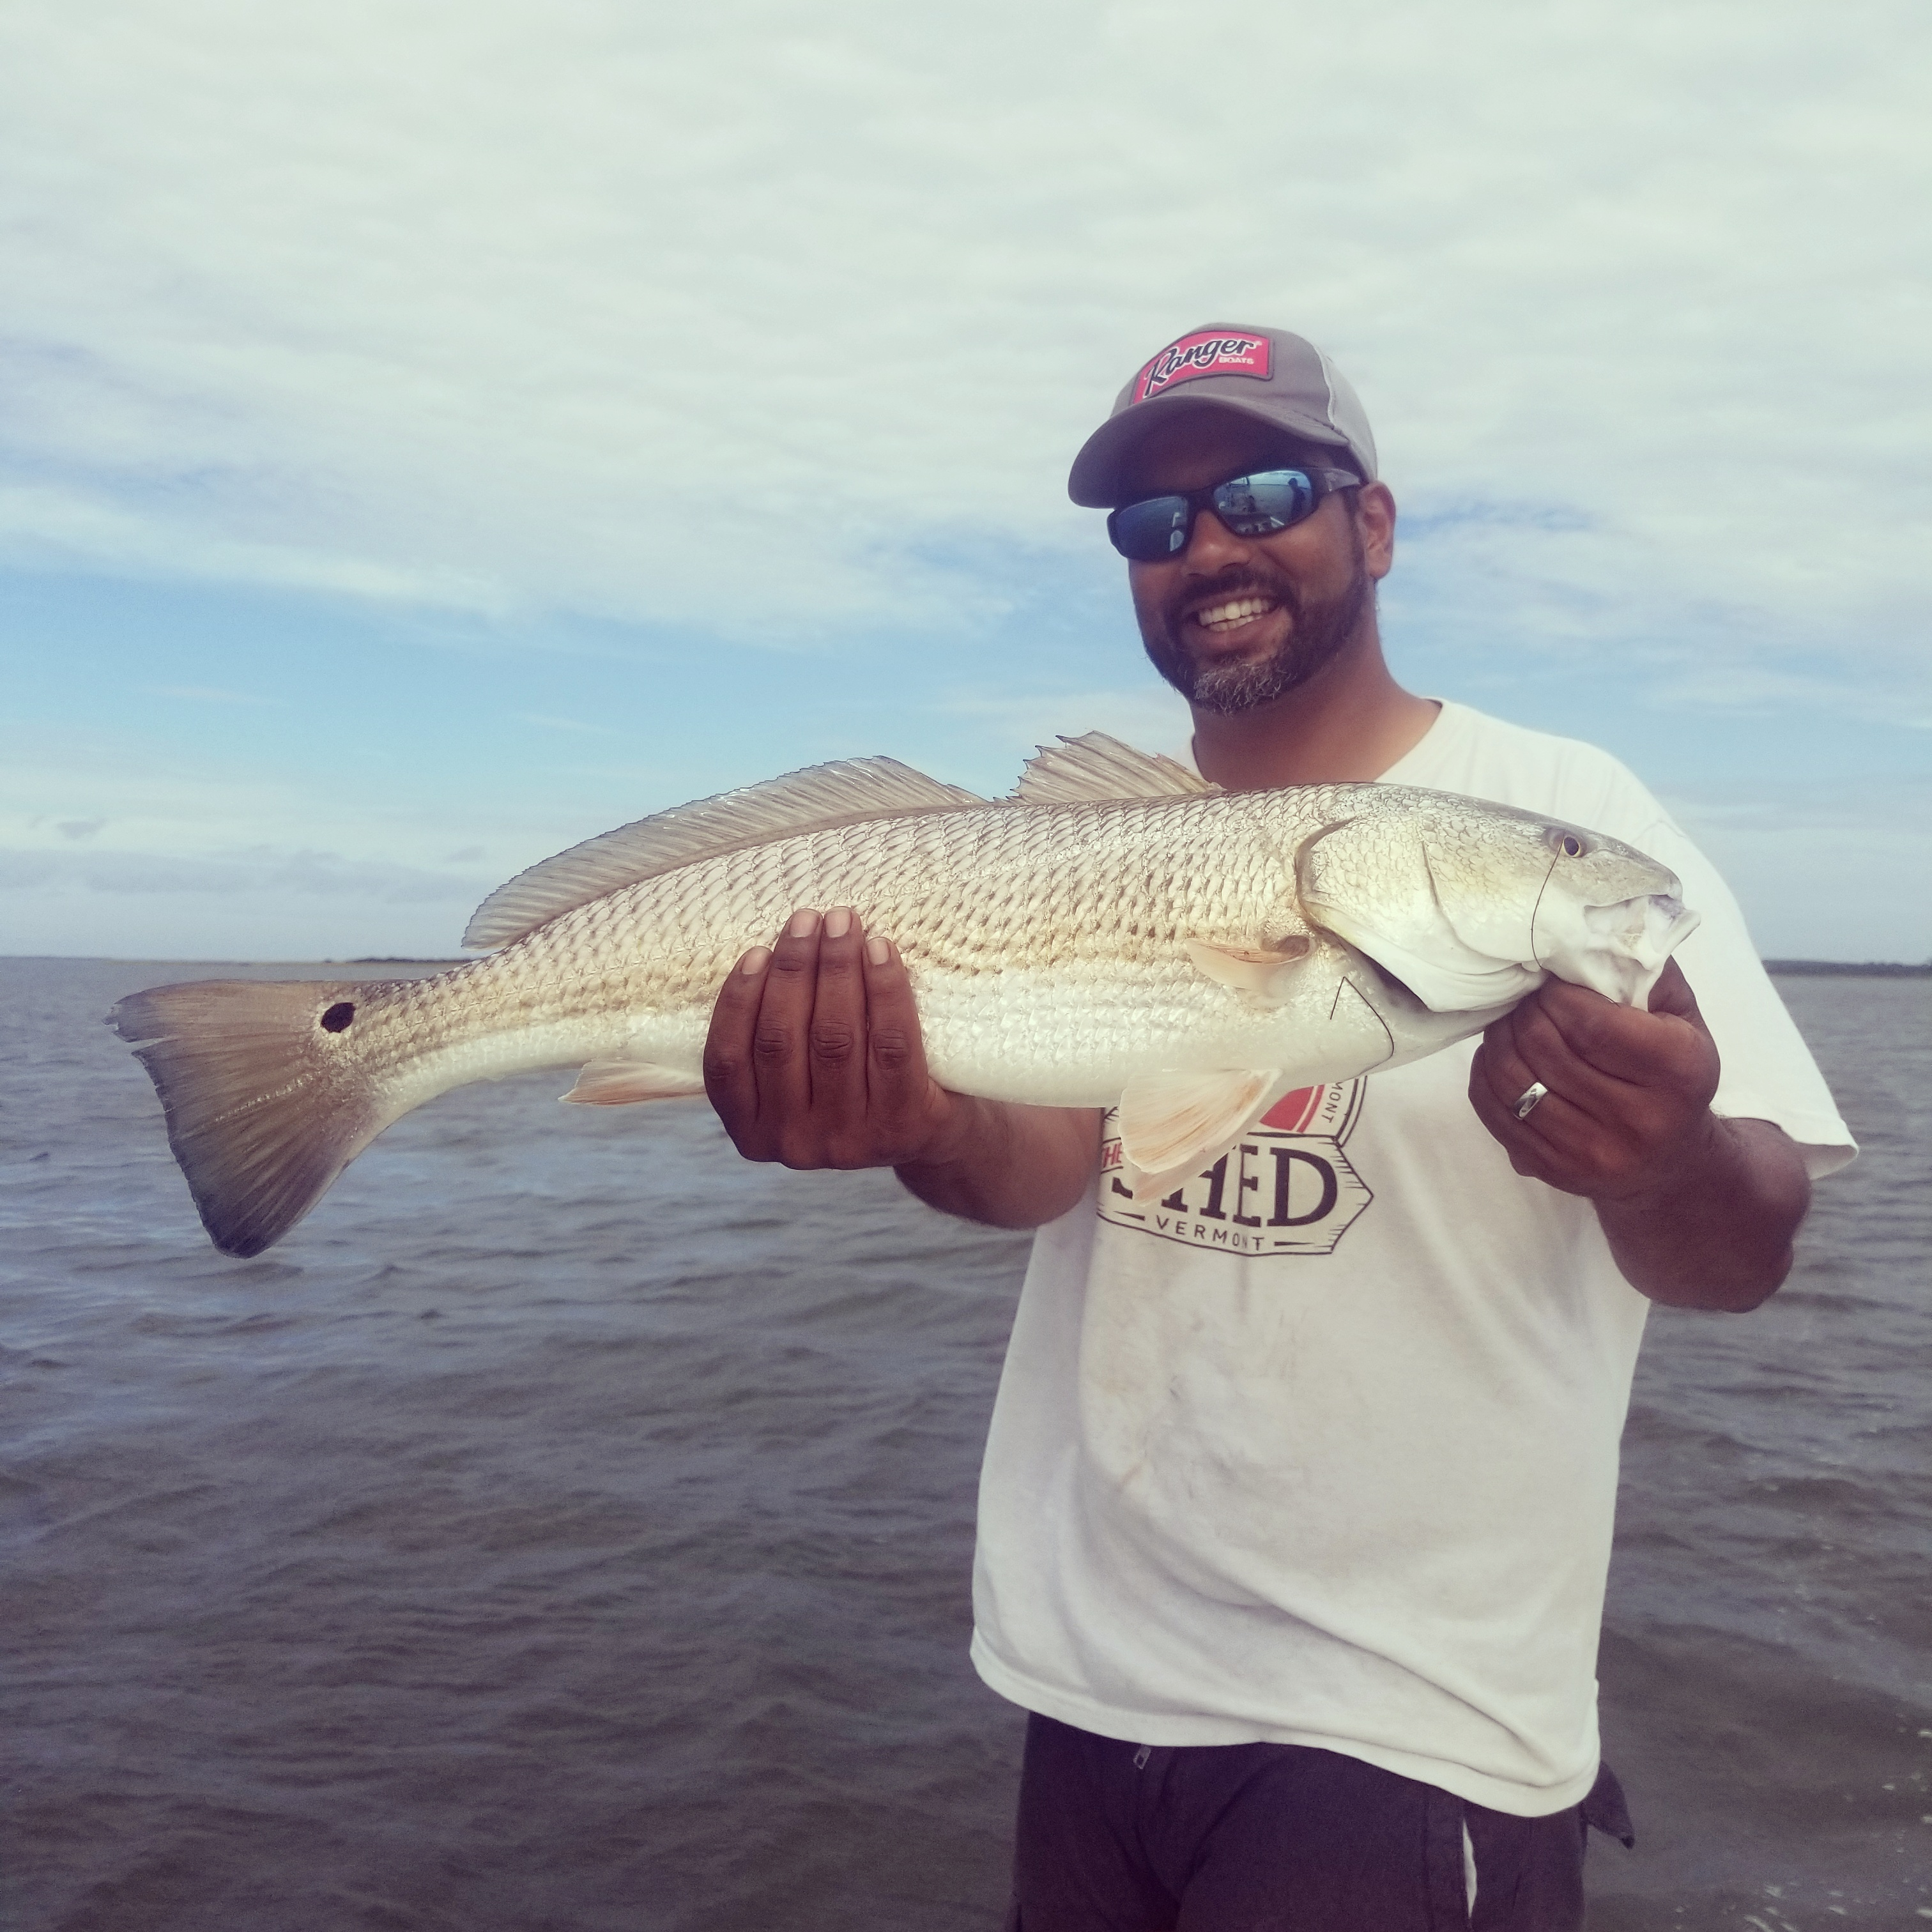 Outer banks fishing report salt minded charters for Obx fishing reports